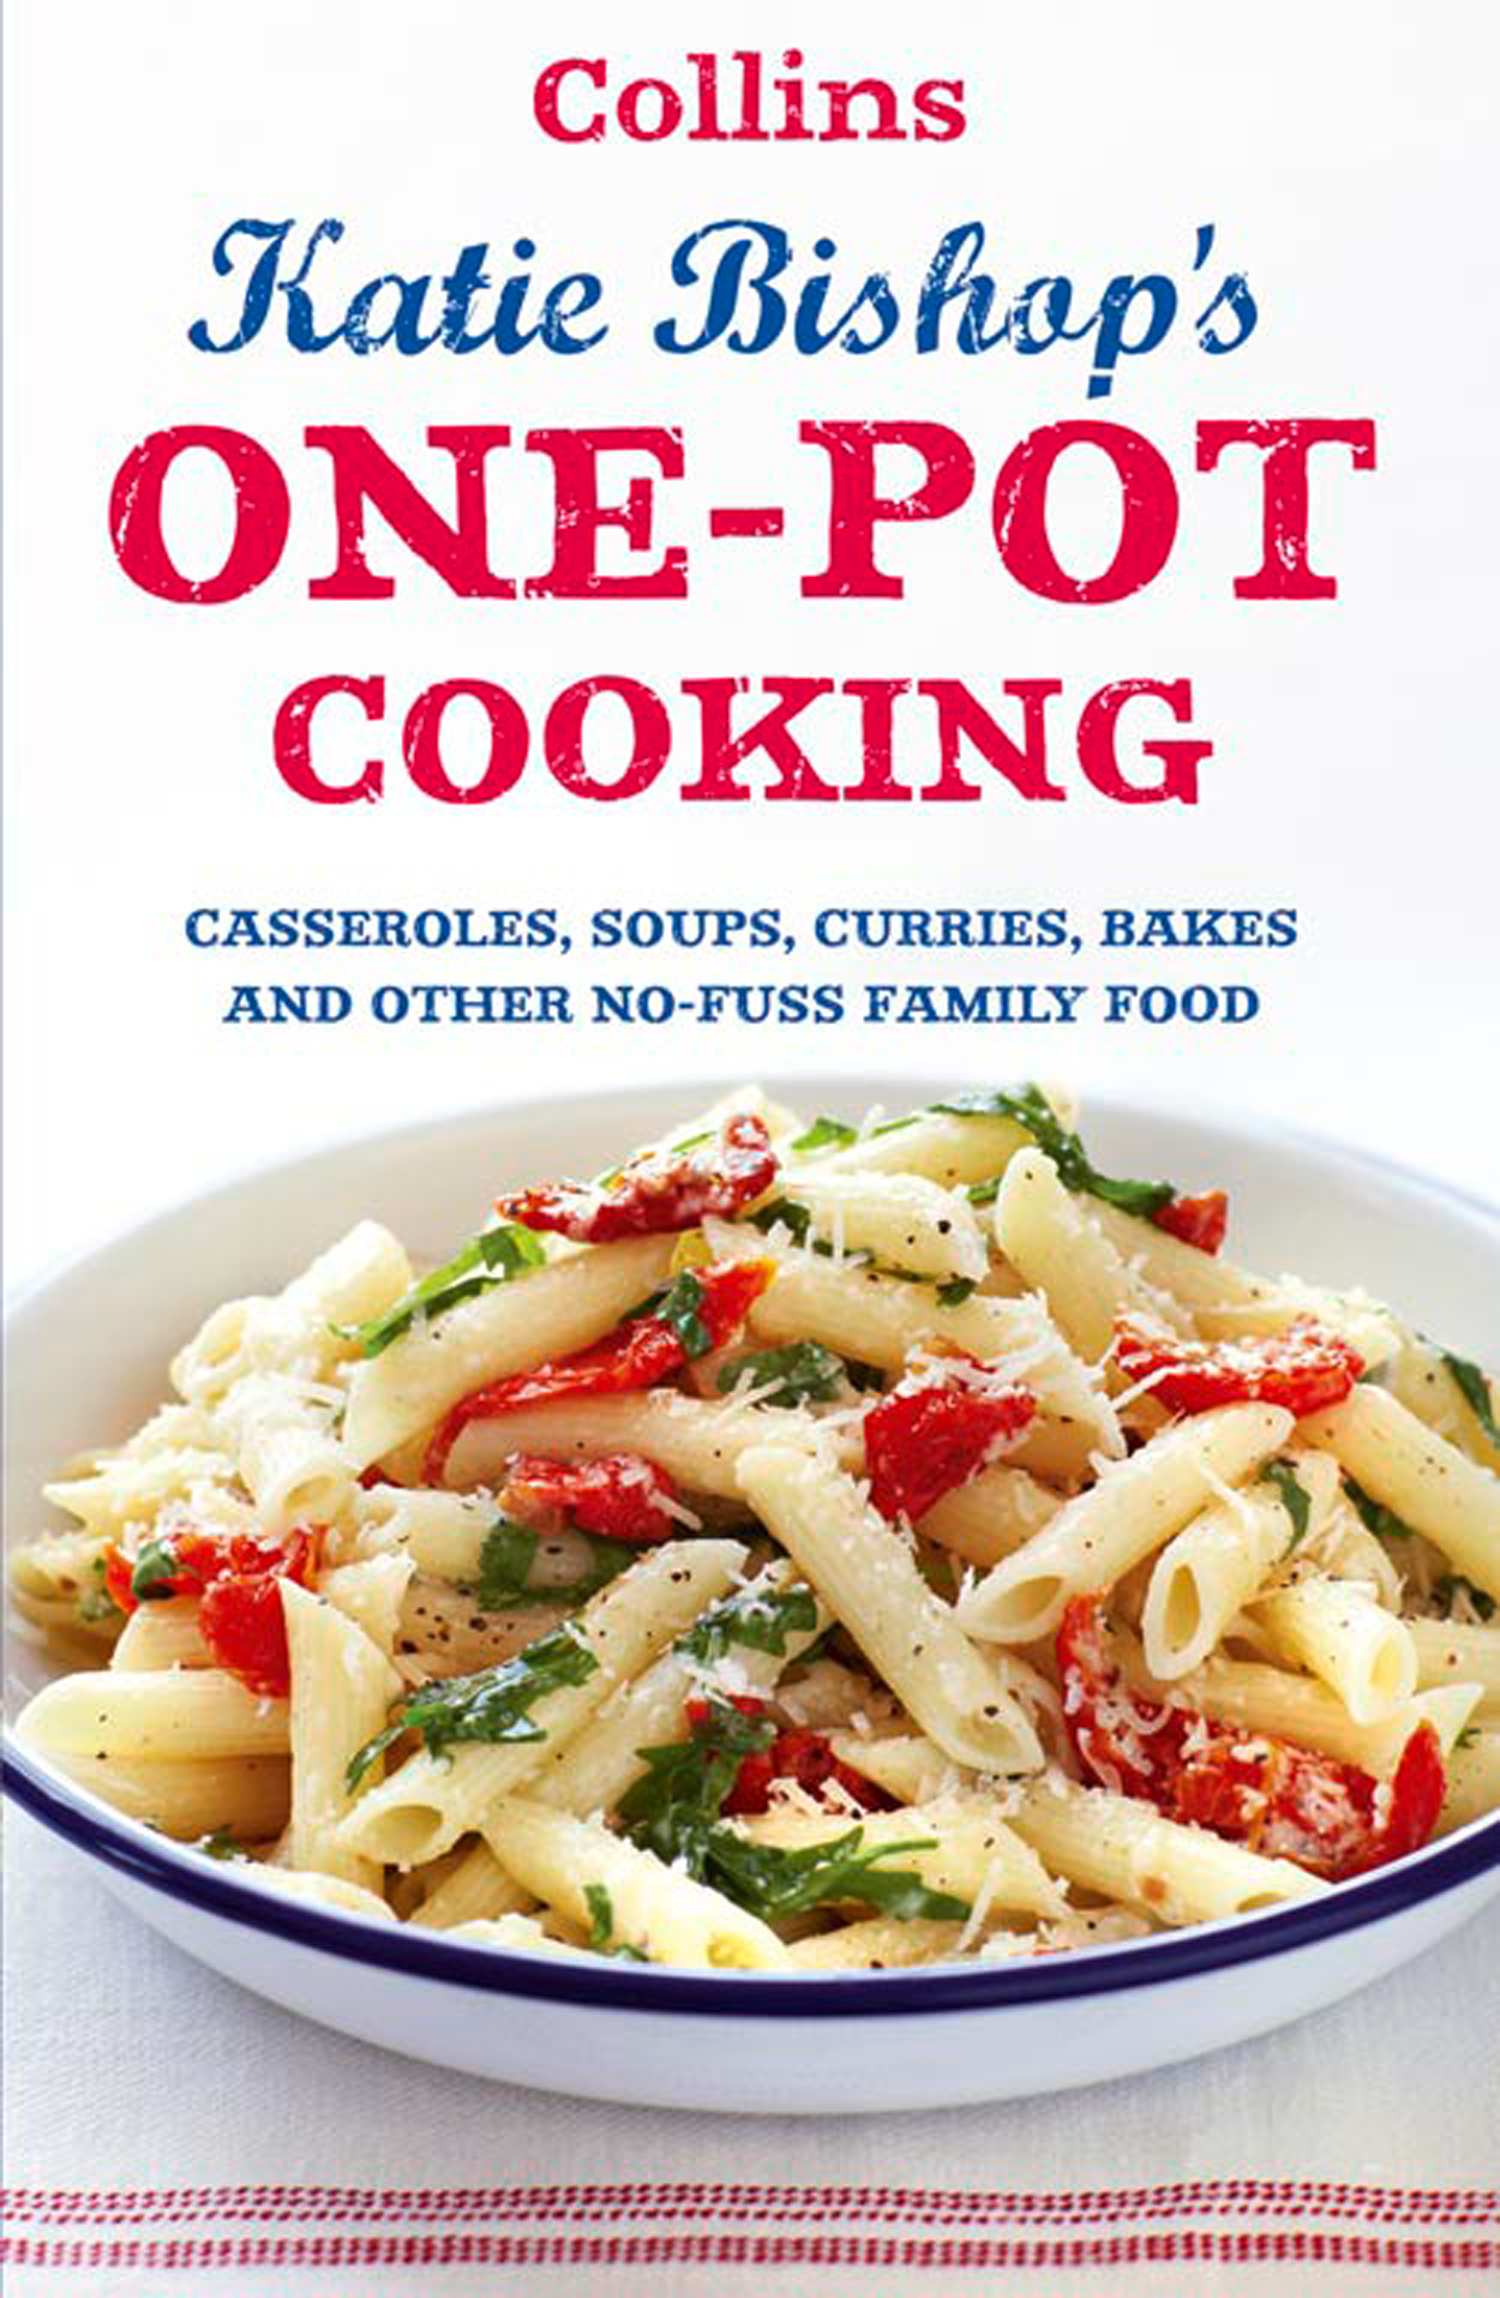 One-Pot Cooking: Casseroles, curries, soups and bakes and other no-fuss family food By: Katie Bishop